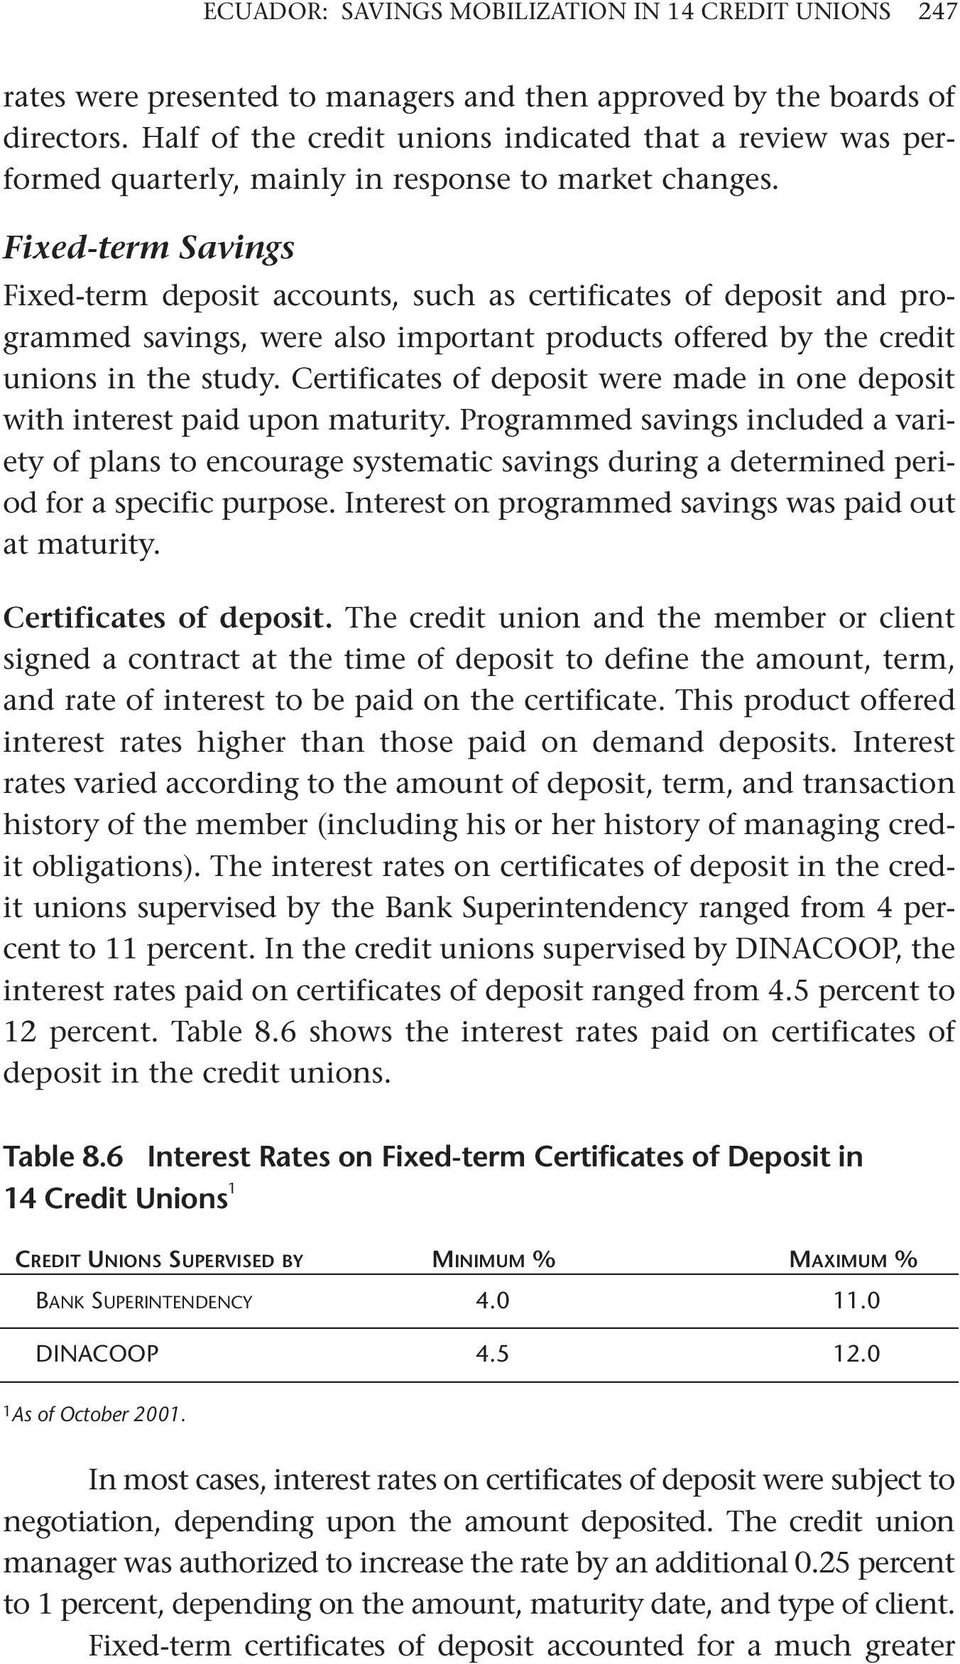 Fixed-term Savings Fixed-term deposit accounts, such as certificates of deposit and programmed savings, were also important products offered by the credit unions in the study.